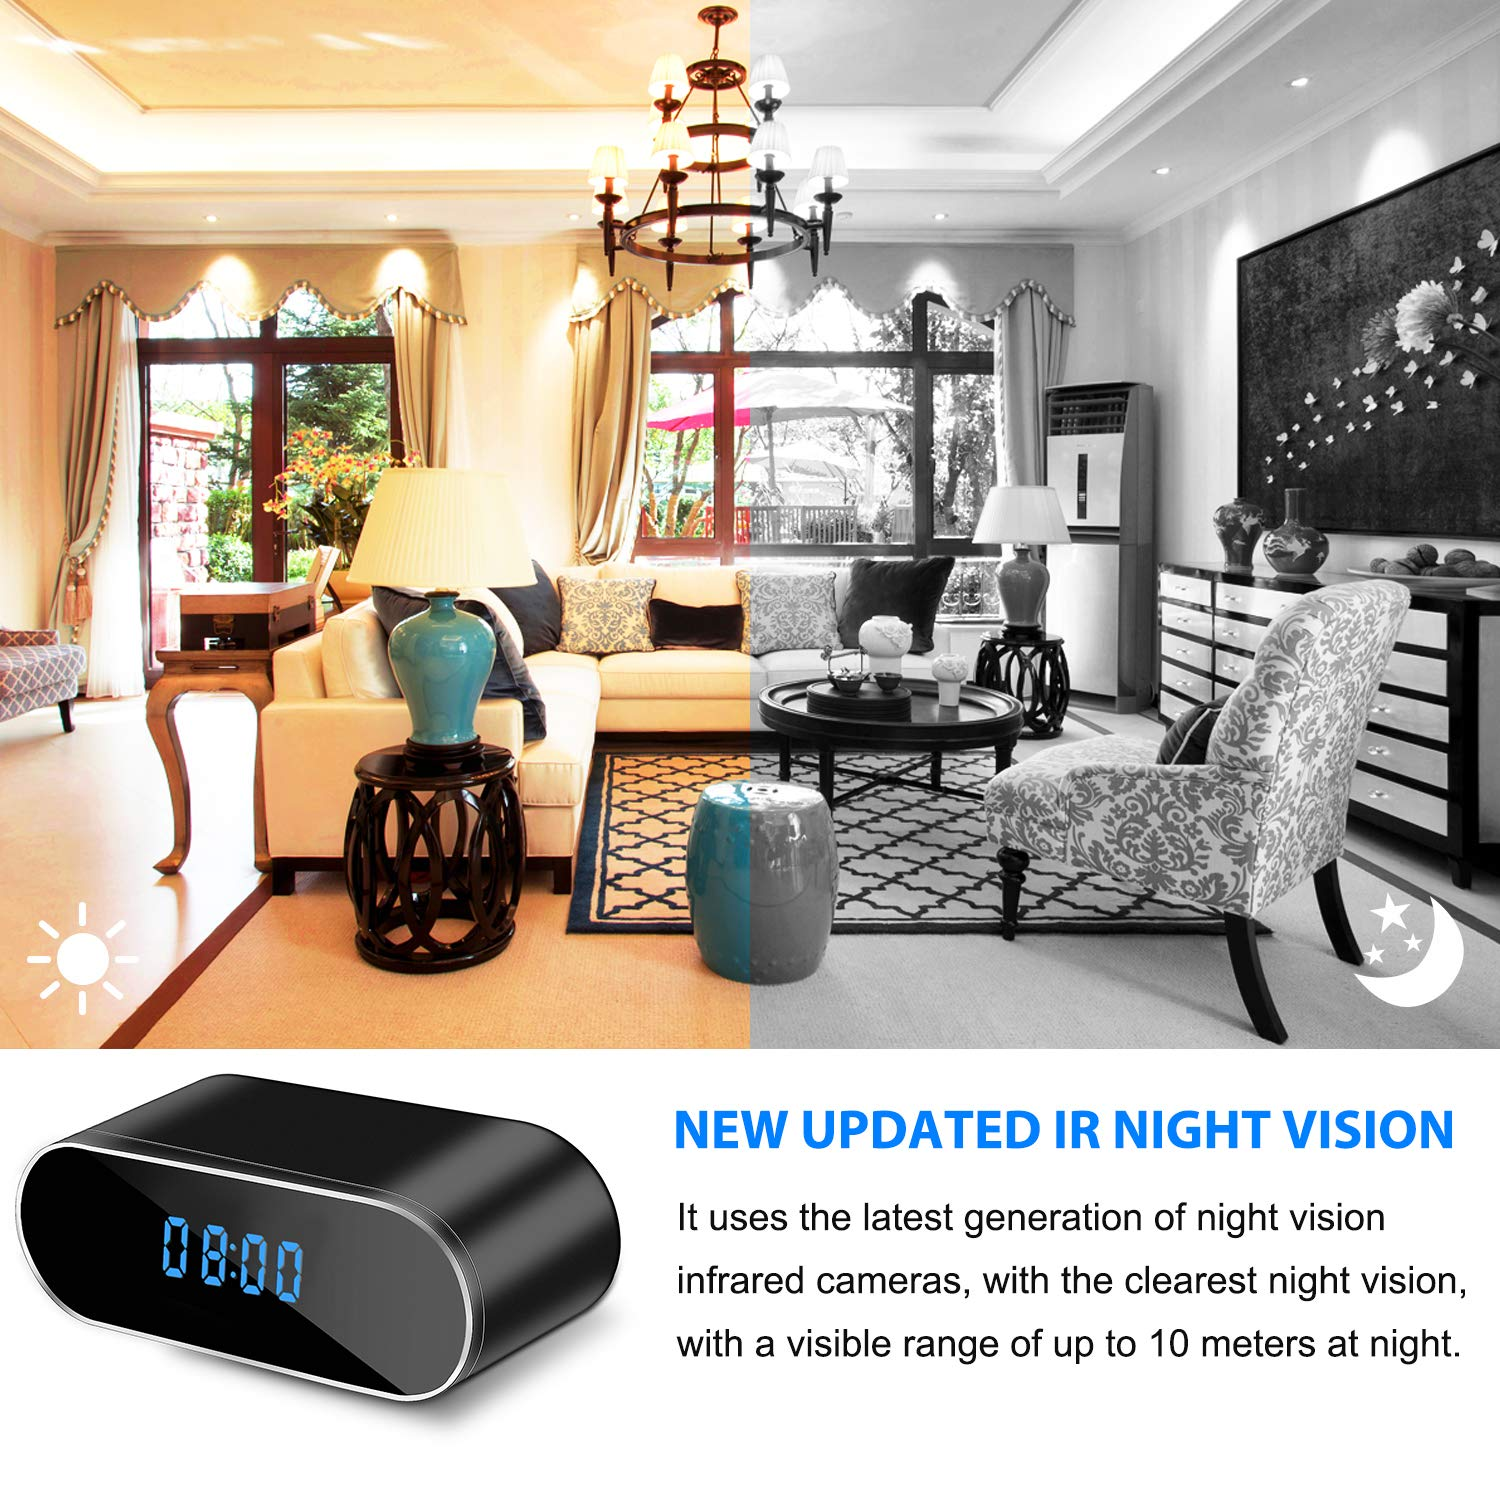 Hidden Camera Clock Perfect 150 Angle Camera Alarm Clock for Home Security WiFi Spy Camera Wireless Hidden 1080P Nanny Cameras and Hidden Cameras with Night Vision and Motion Detective